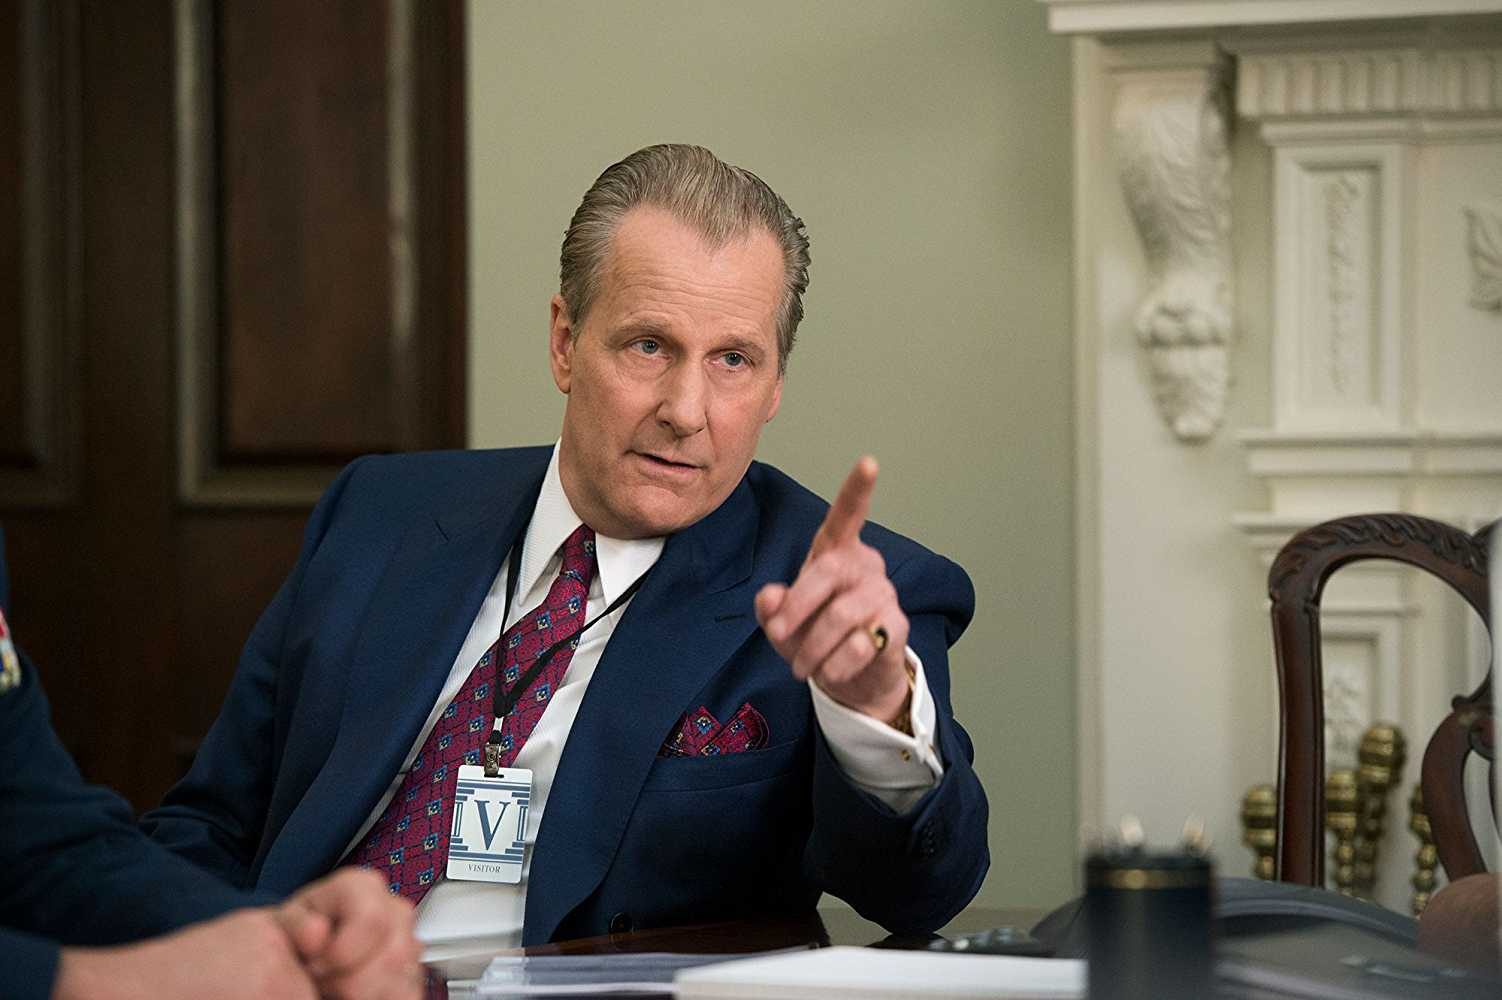 'The Looming Tower' explores the events that led to 9/11 (Source: IMDb)